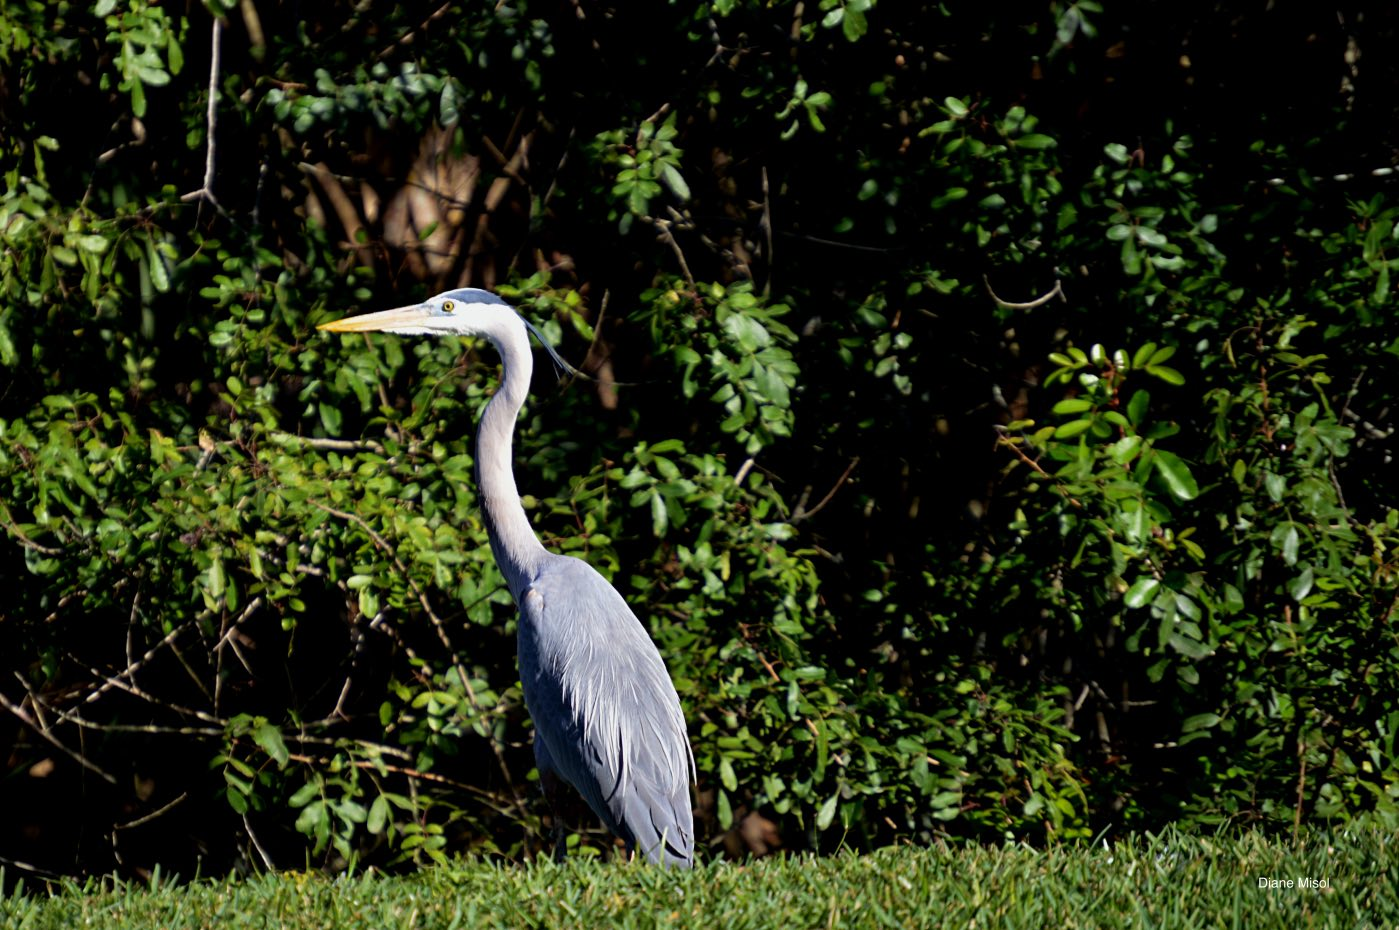 Great Blue Heron, Birdwatching, Lake Okeechobee